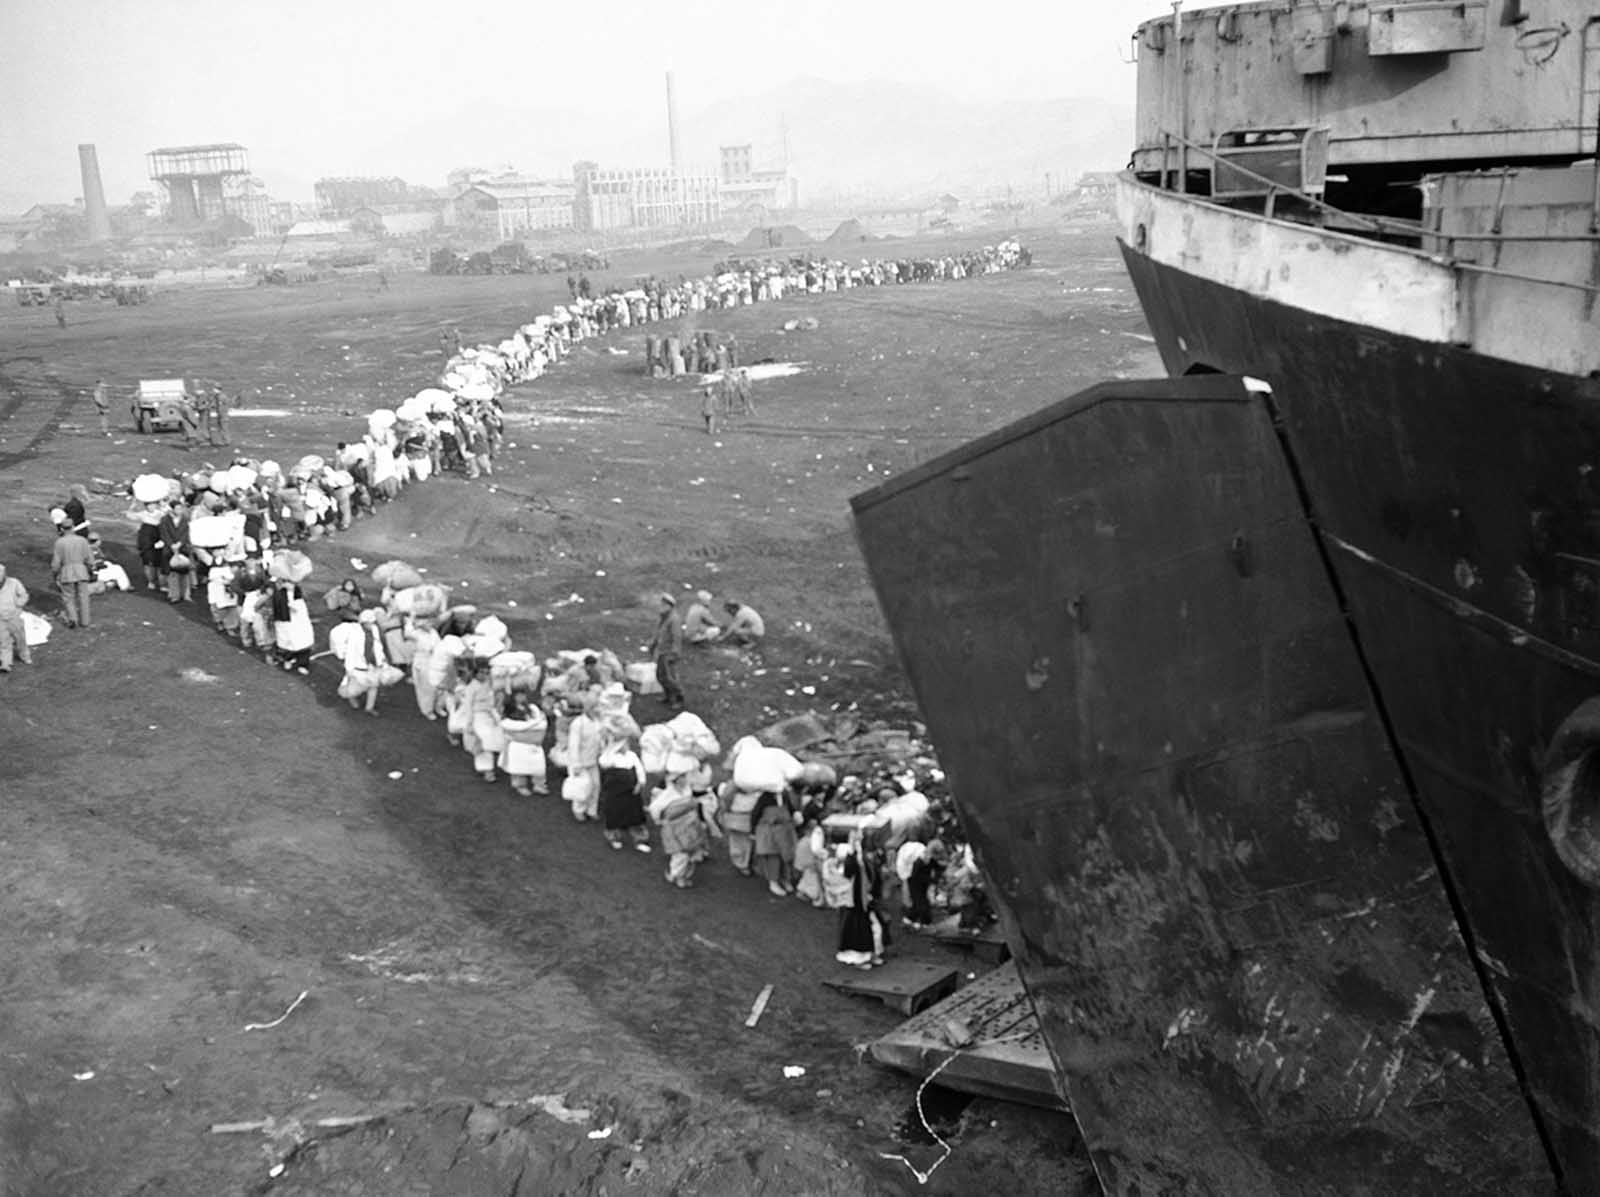 A long winding stream of Korean refugees board a vessel in Hungnam harbor, North Korea on December 21, 1950, as they flee the advancing Chinese Communists and North Koreans.